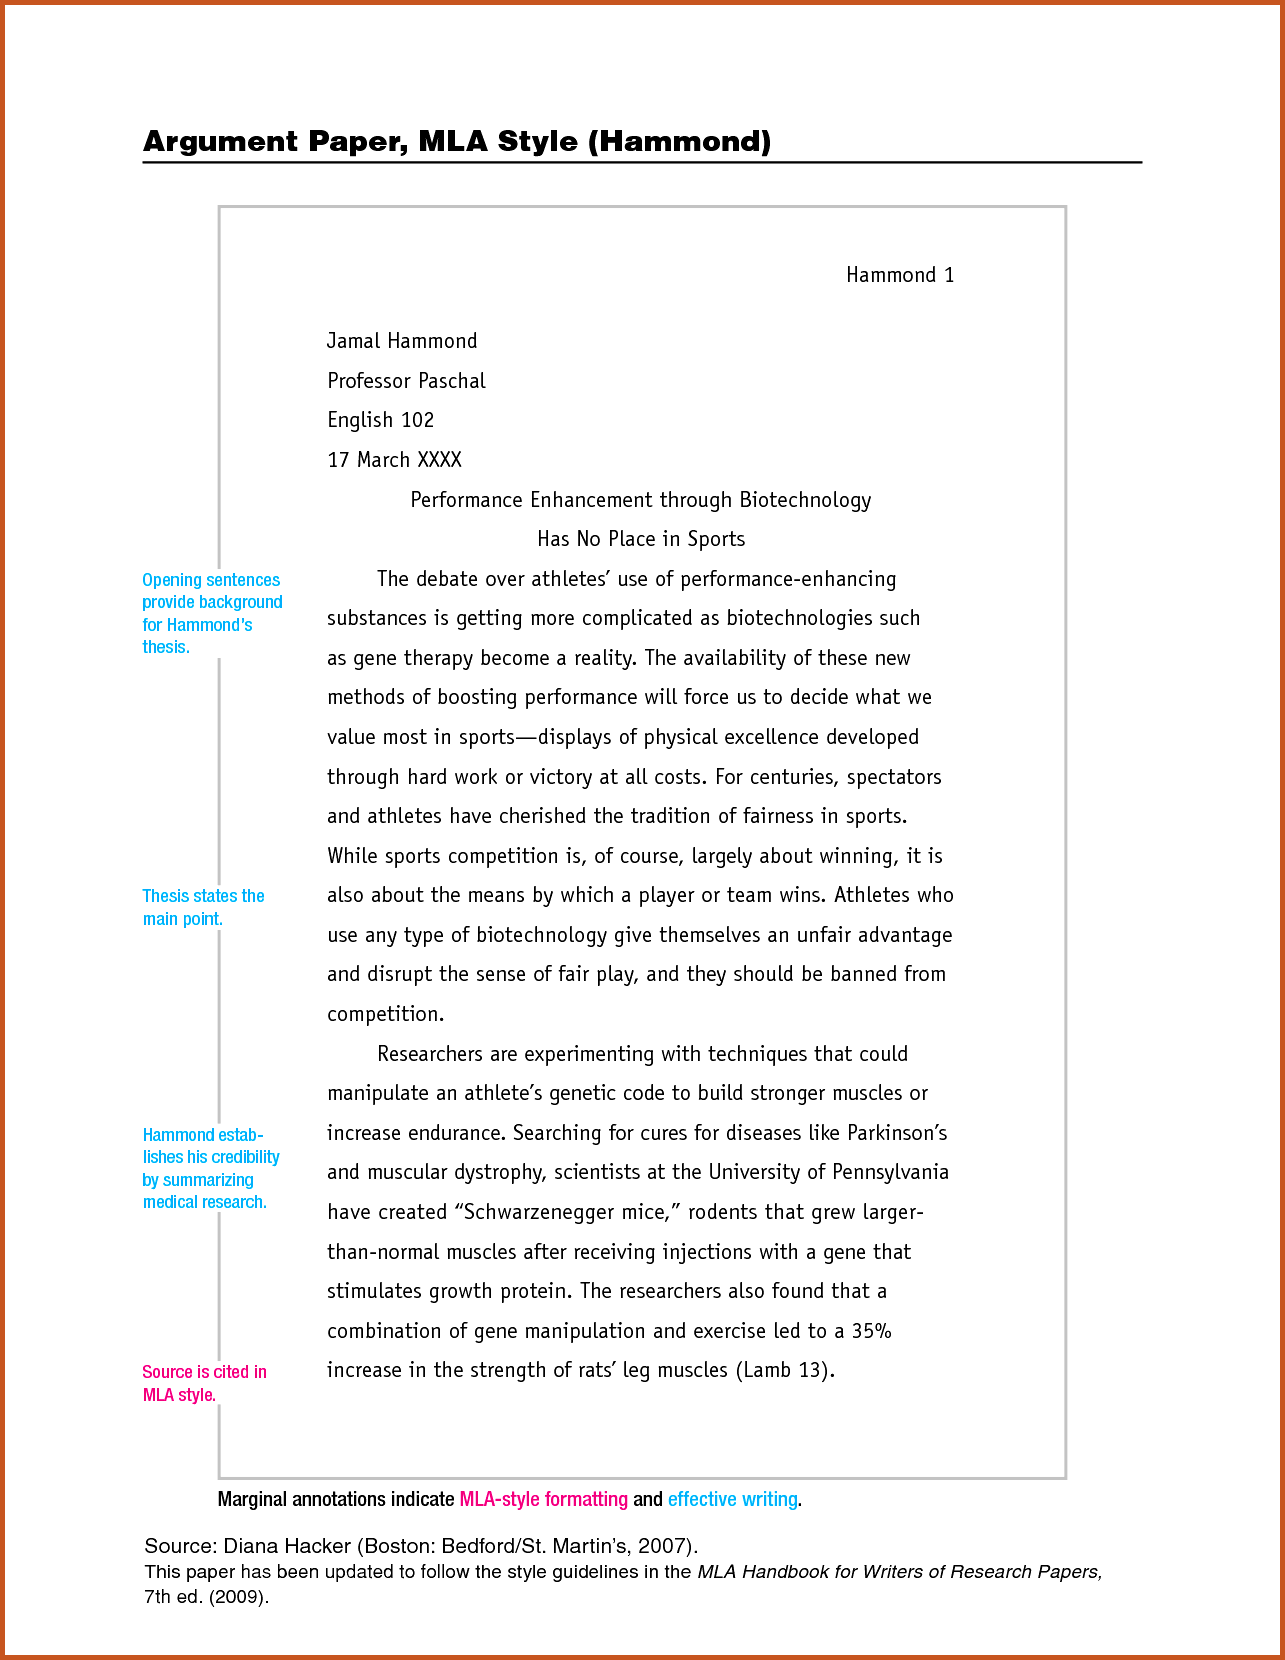 Observation Paper Example Apa Format on running head, heading sub-heading, conference proposal, one page reflection, written subheadings, research template, first page,